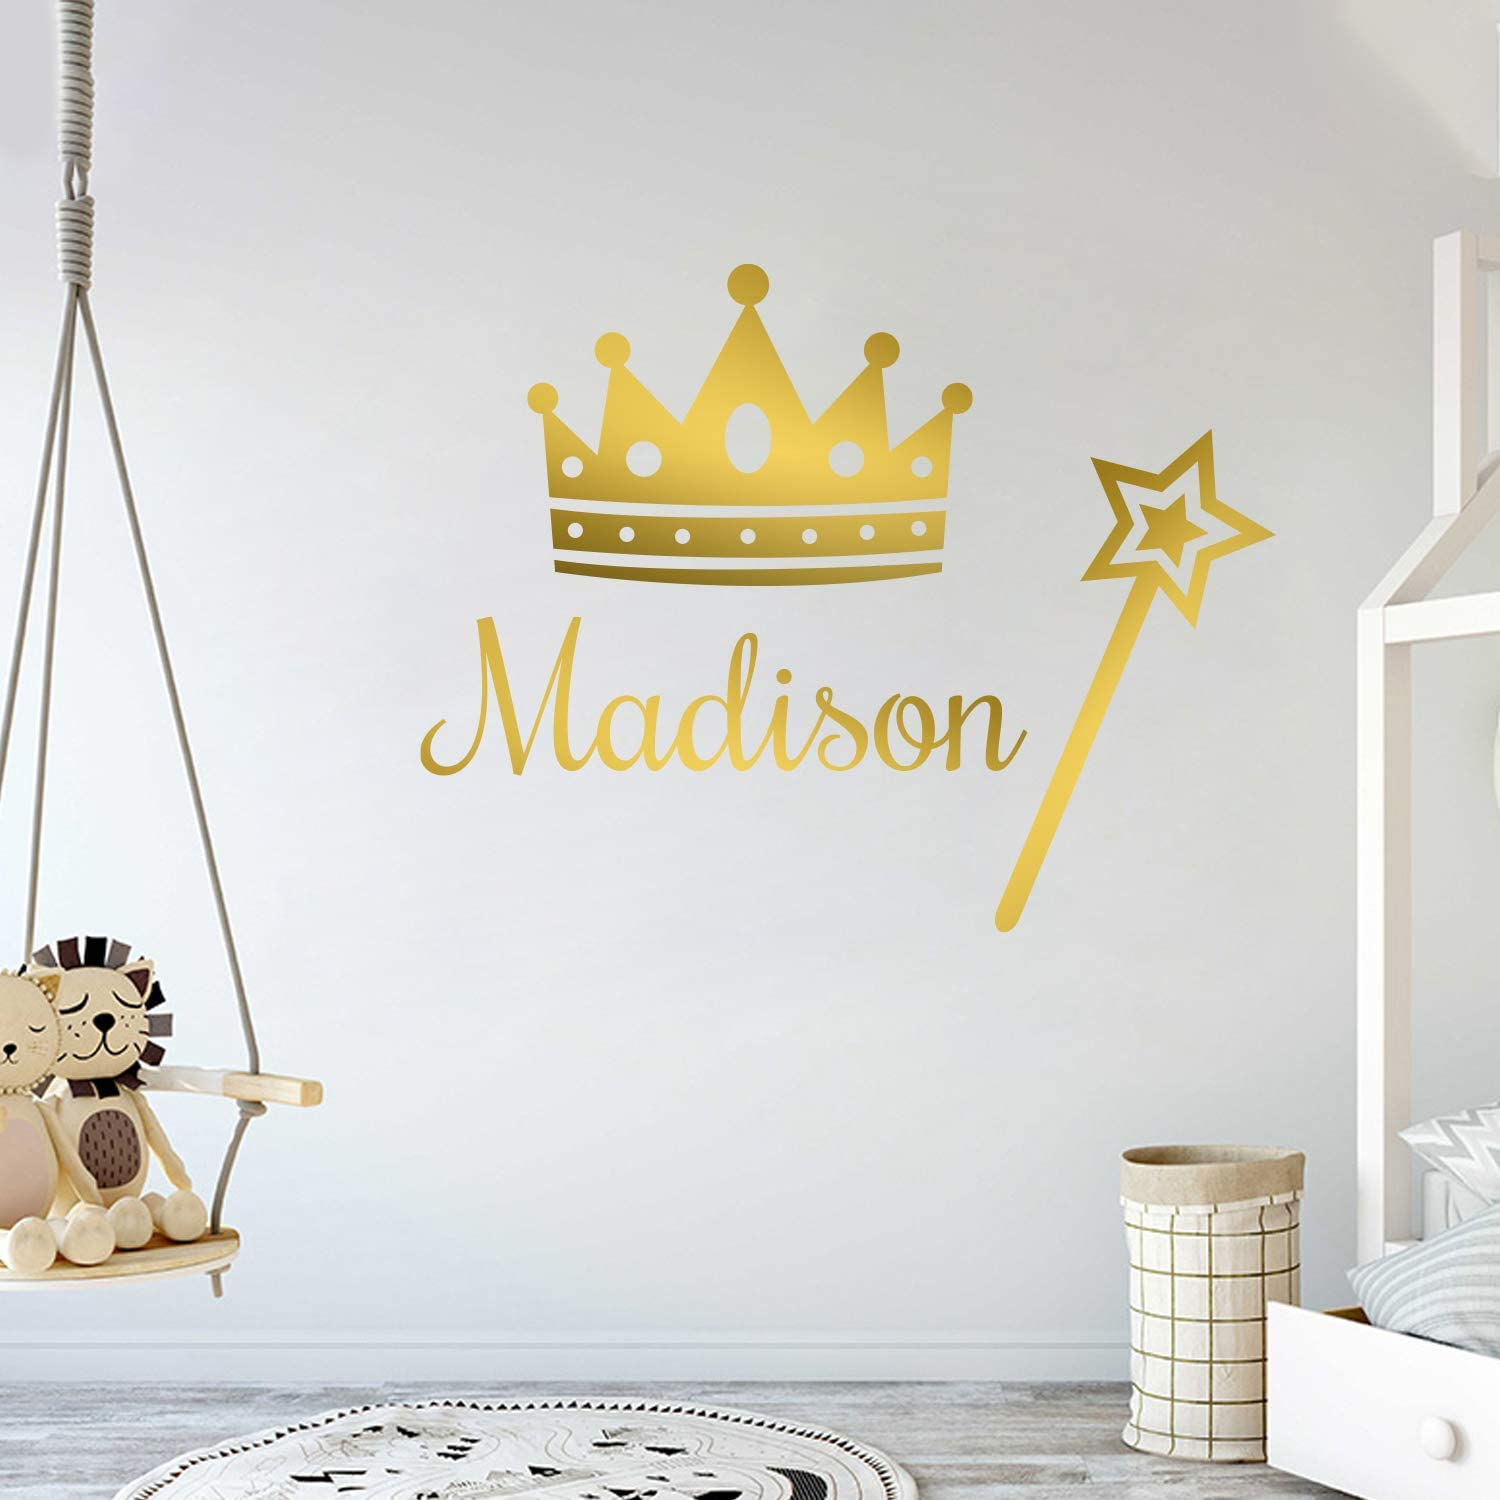 Multiple Font Princess Decor - Personalized Name Princess Wall Decal - Nursery Baby Girl Decoration - Mural Wall Decal Sticker for Home Interior Decoration Car Laptop (M382V2)